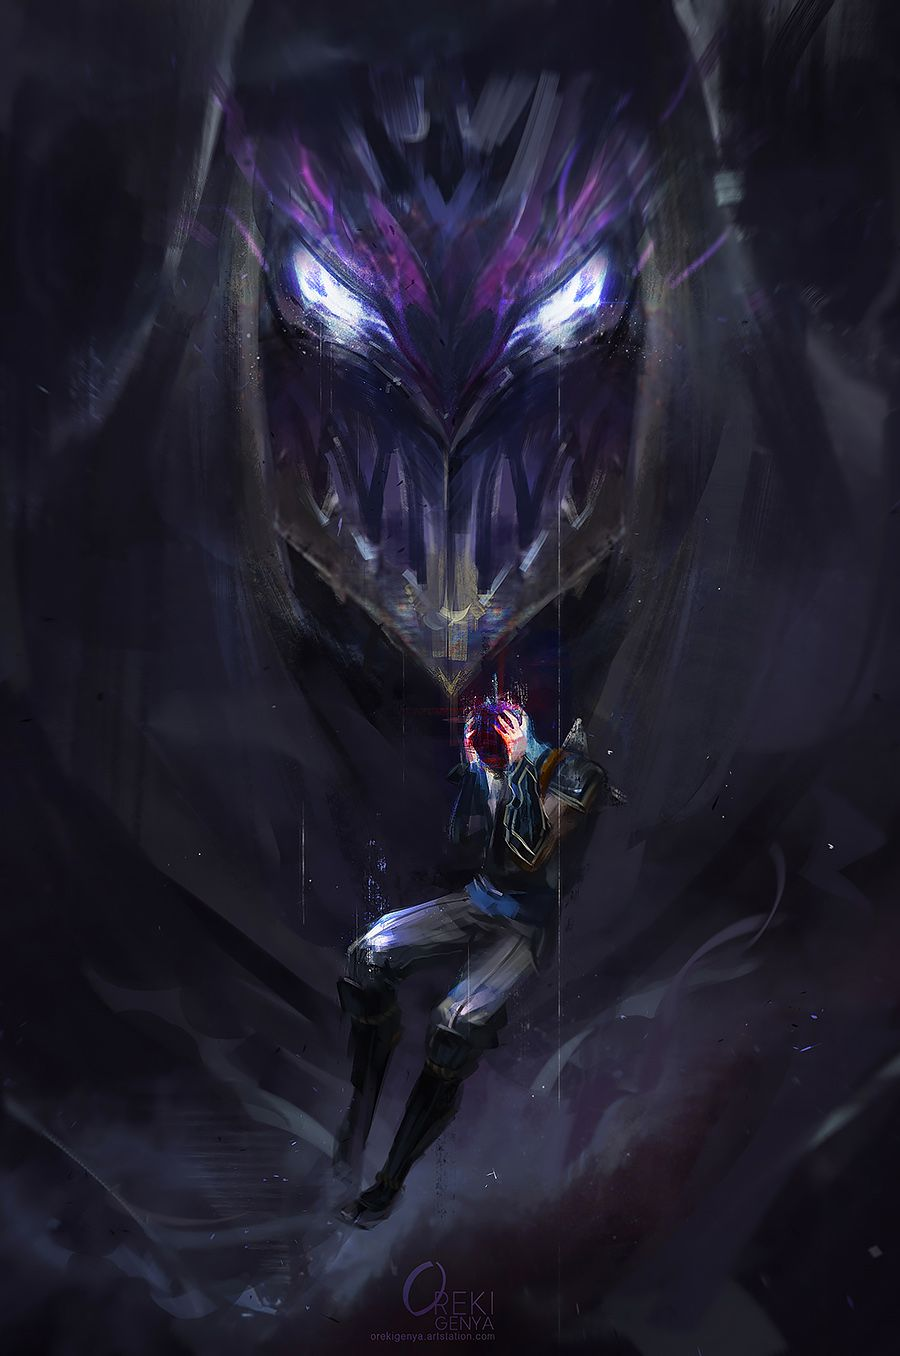 Free Download Zed Lol Wallpapers Lol Lol League Of Legends League Of 900x1356 For Your Desktop Mobile Tablet Explore 47 League Of Legends Zed Wallpaper League Of Legends 1080p